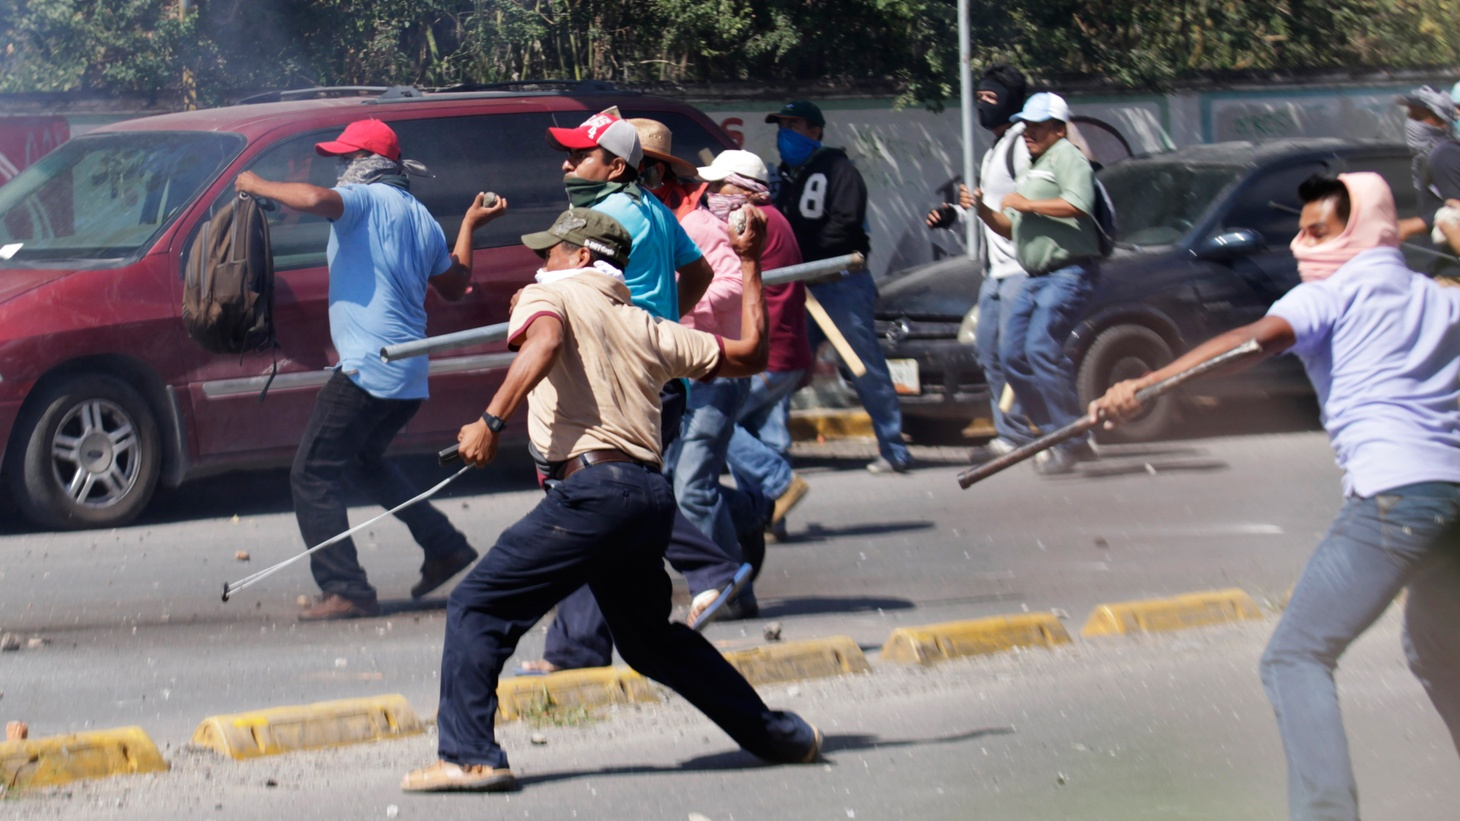 Why has the disappearance of 43 students in Mexico galvanized protesters there to such an extreme degree -- more than past incidents of drug violence? And is the U.S. paying enough attention to the Mexican crisis?